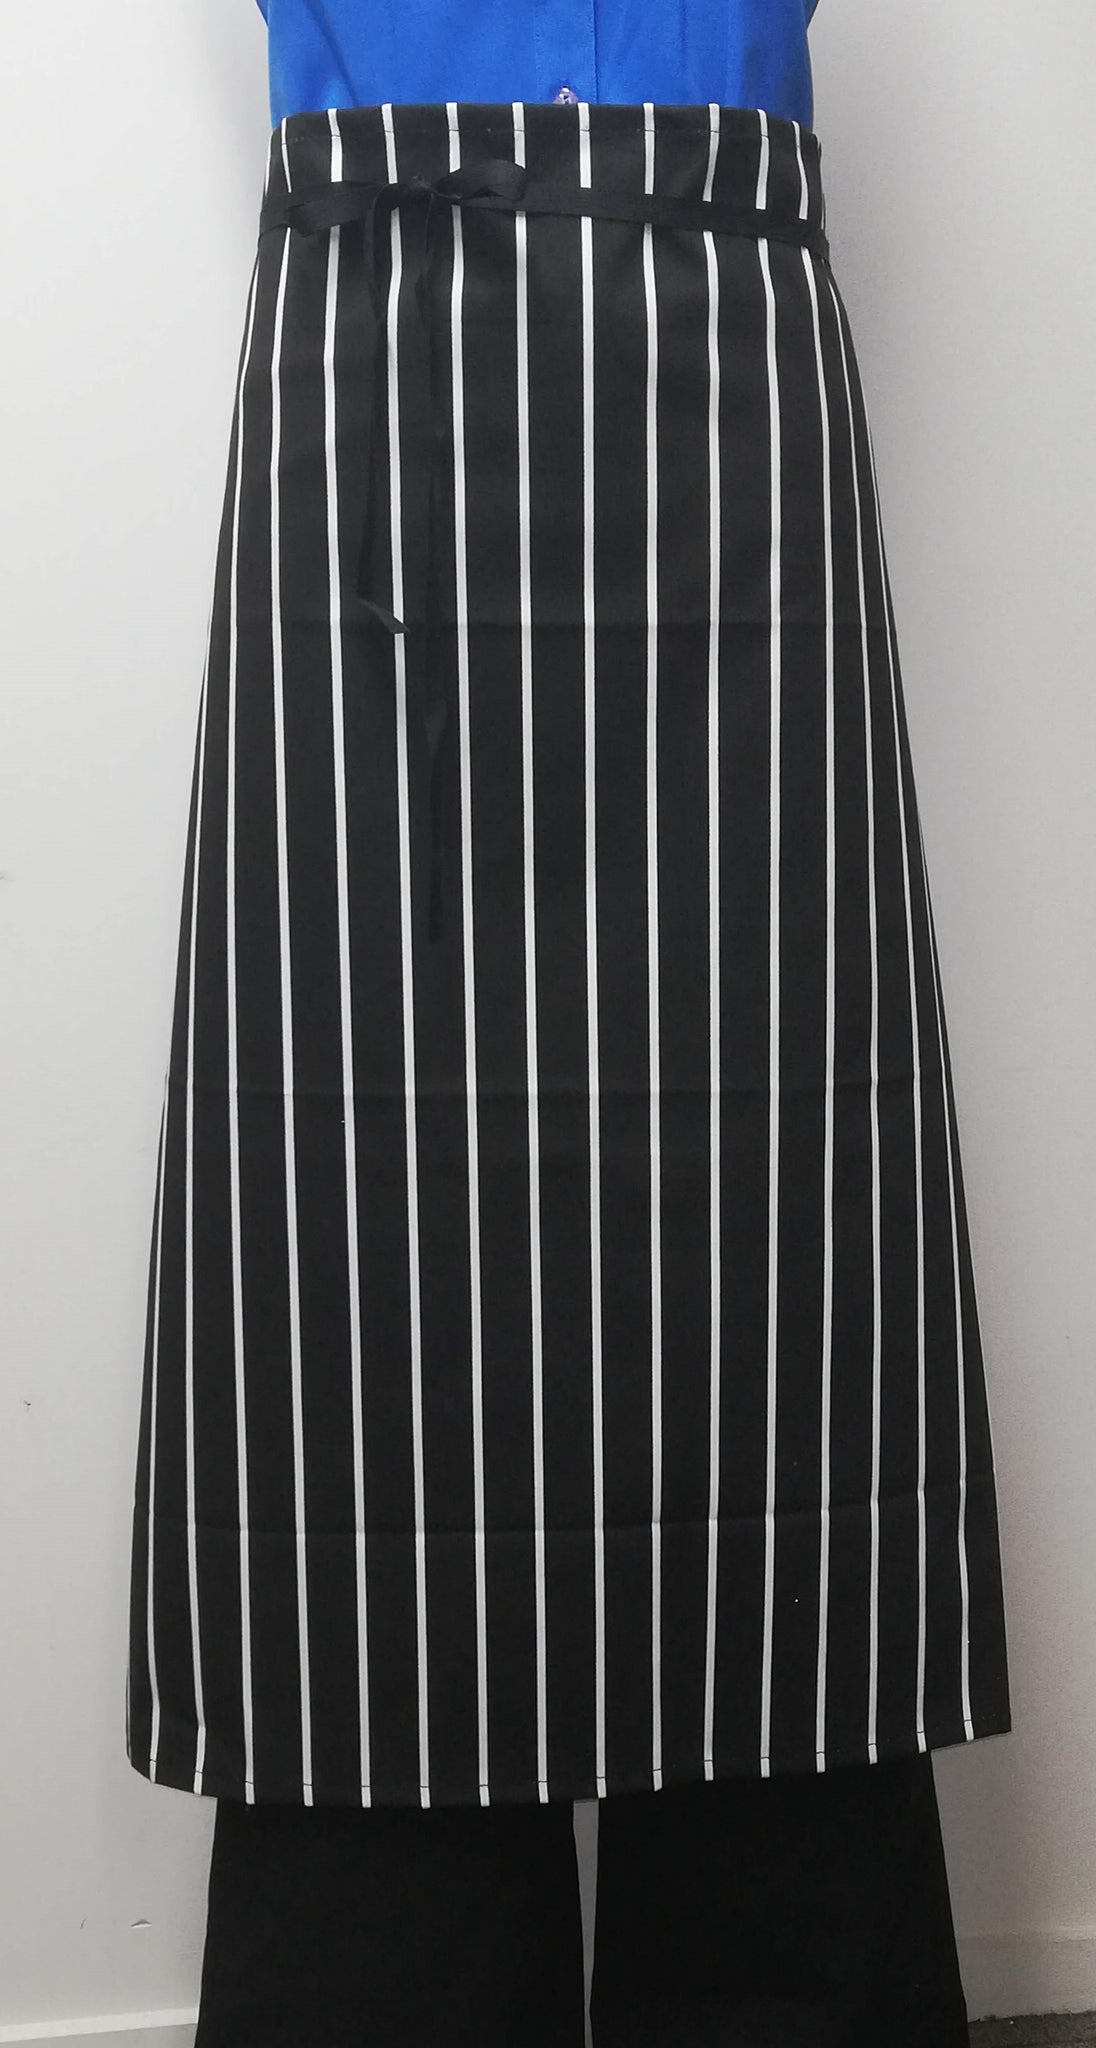 AL03 Long Waist Apron - Black/White Stripe